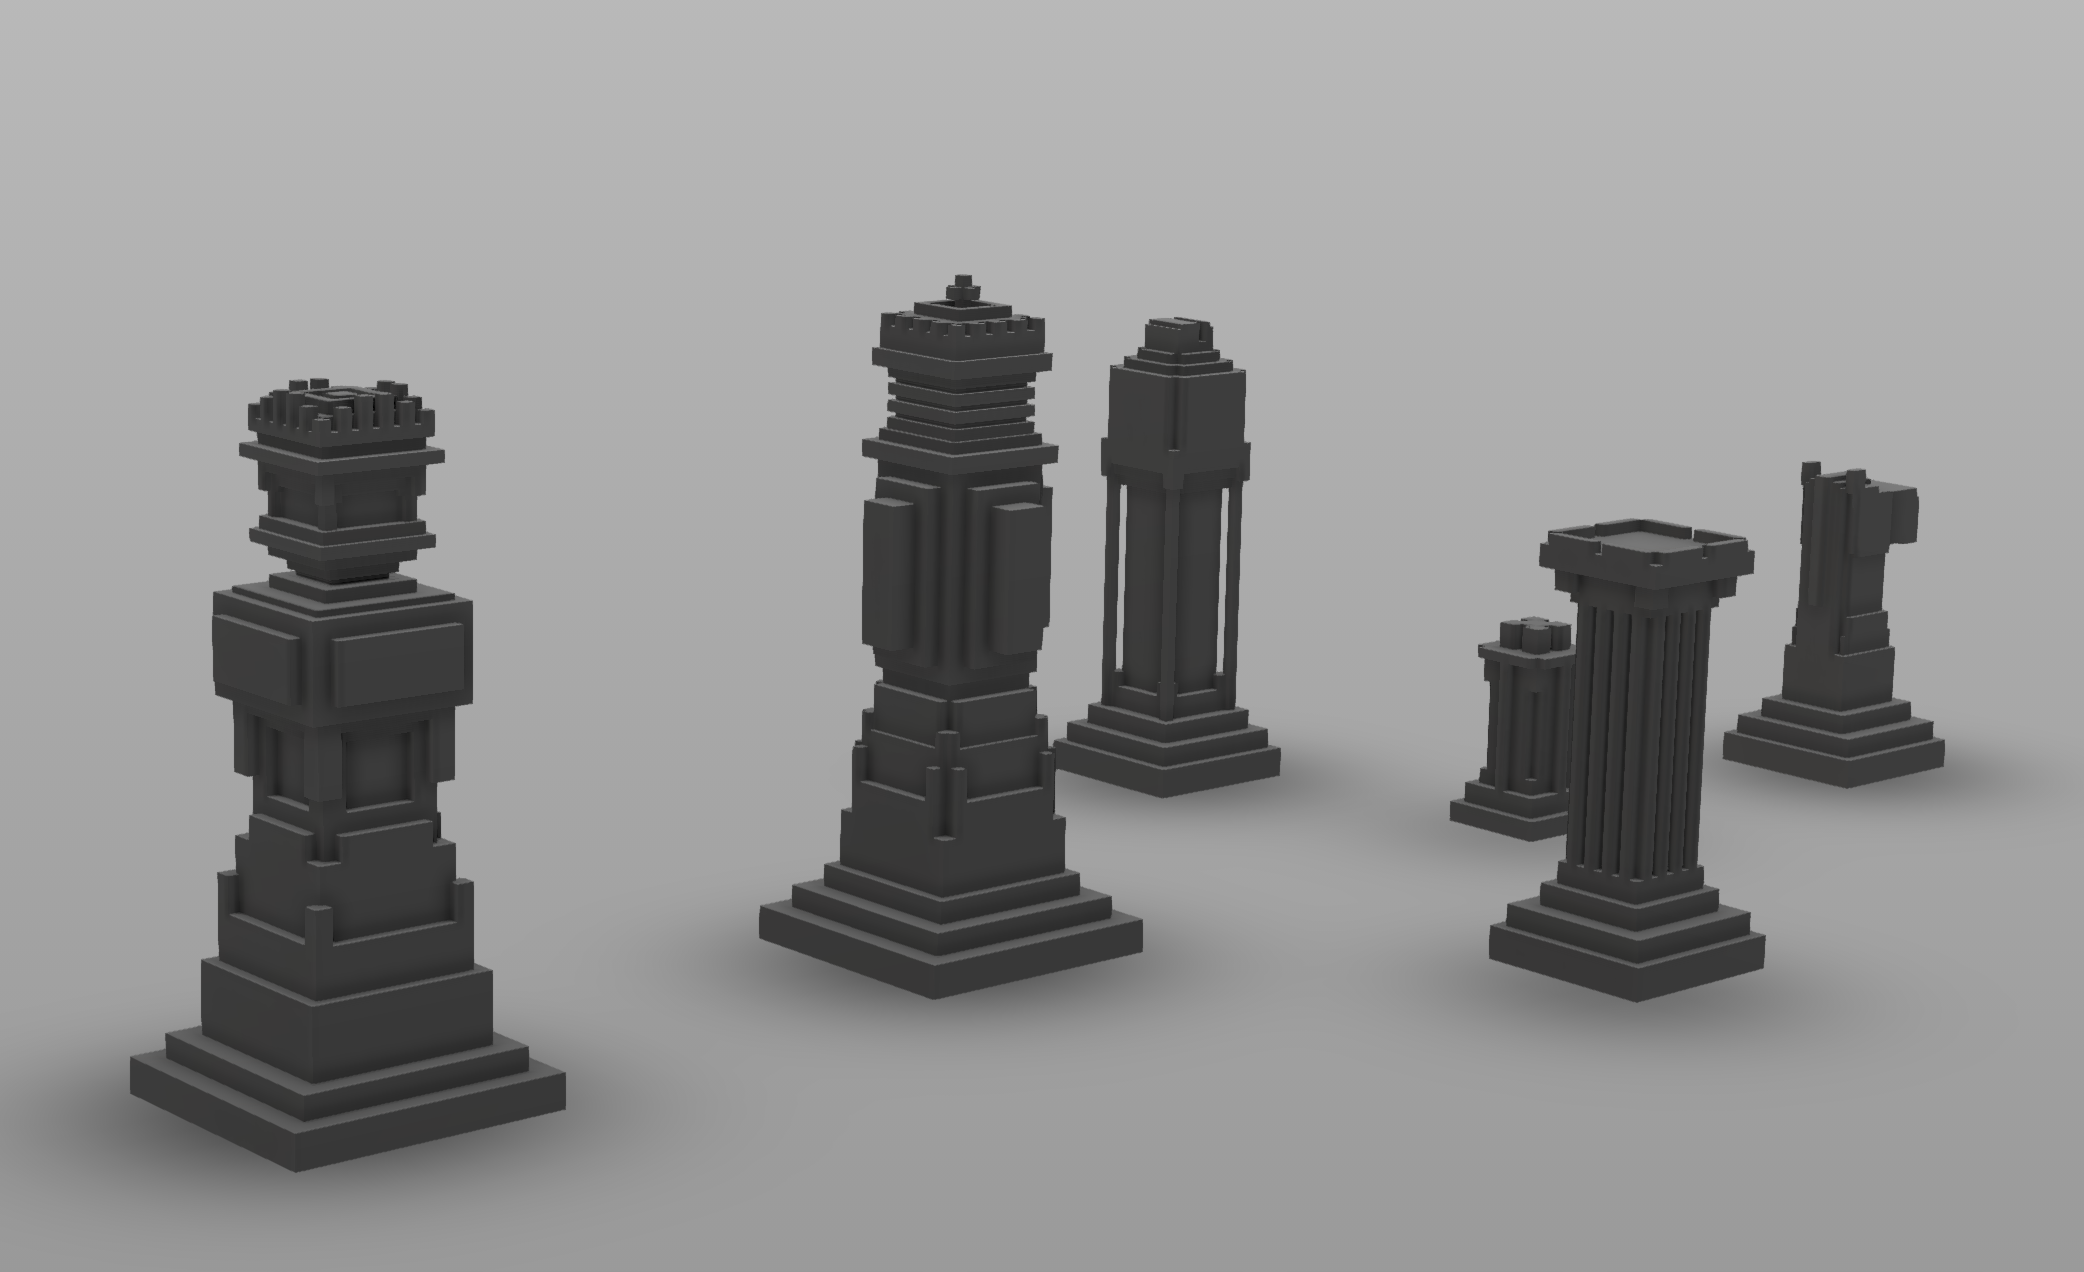 3D Printing: Cuboidal Chess piece   First hand interaction with Autodesk Fusion 360, Print Studio. Modelled chess pieces with a self-constraint of putting no curves. Hope you like it!   Software:  Autodesk Fusion 360, Print Studio